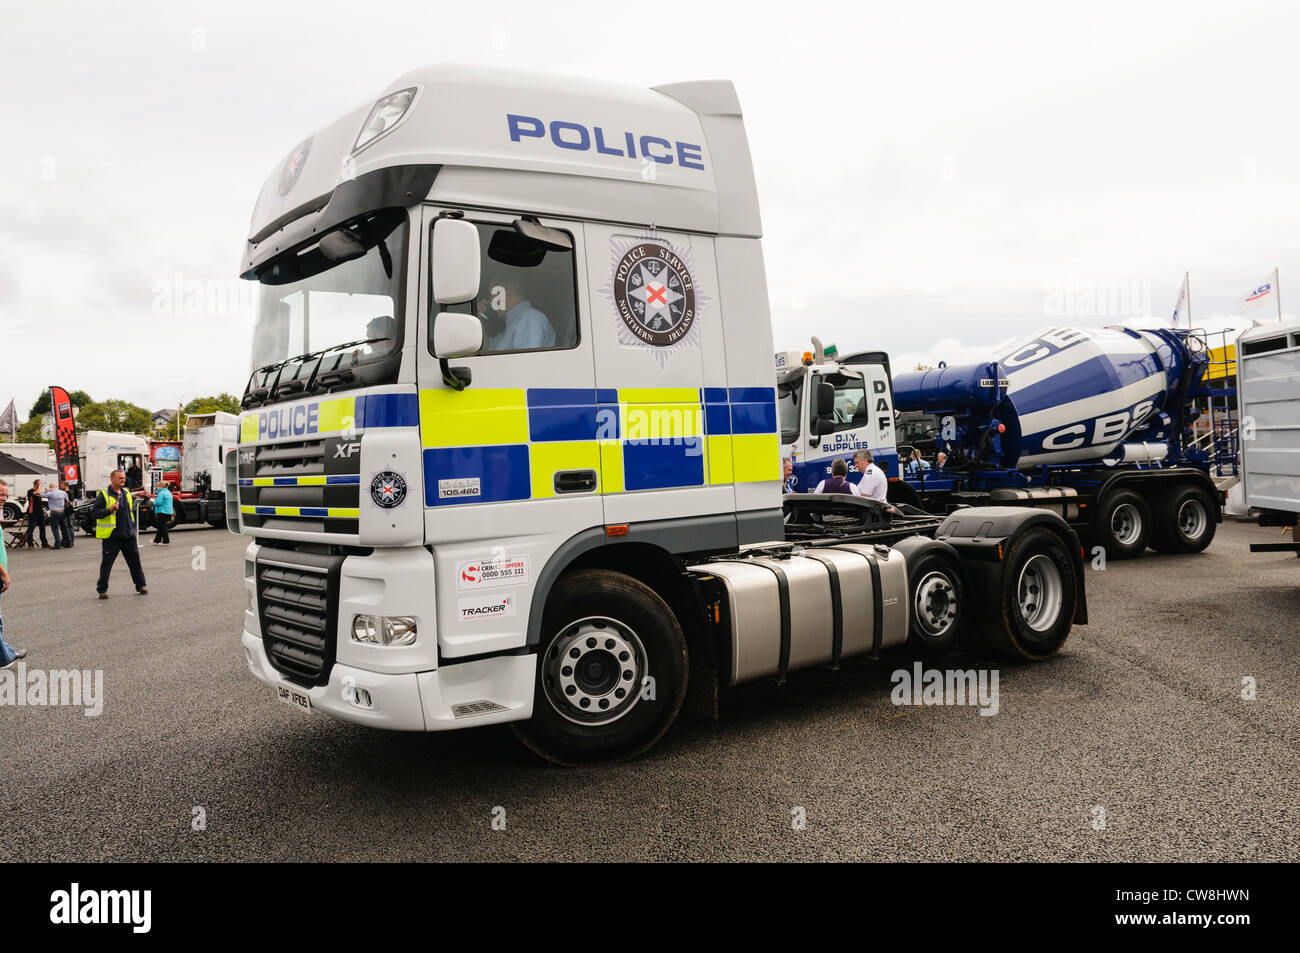 DAF XF lorry/truck with Police Service of Northern Ireland (PSNI) livery - Stock Image